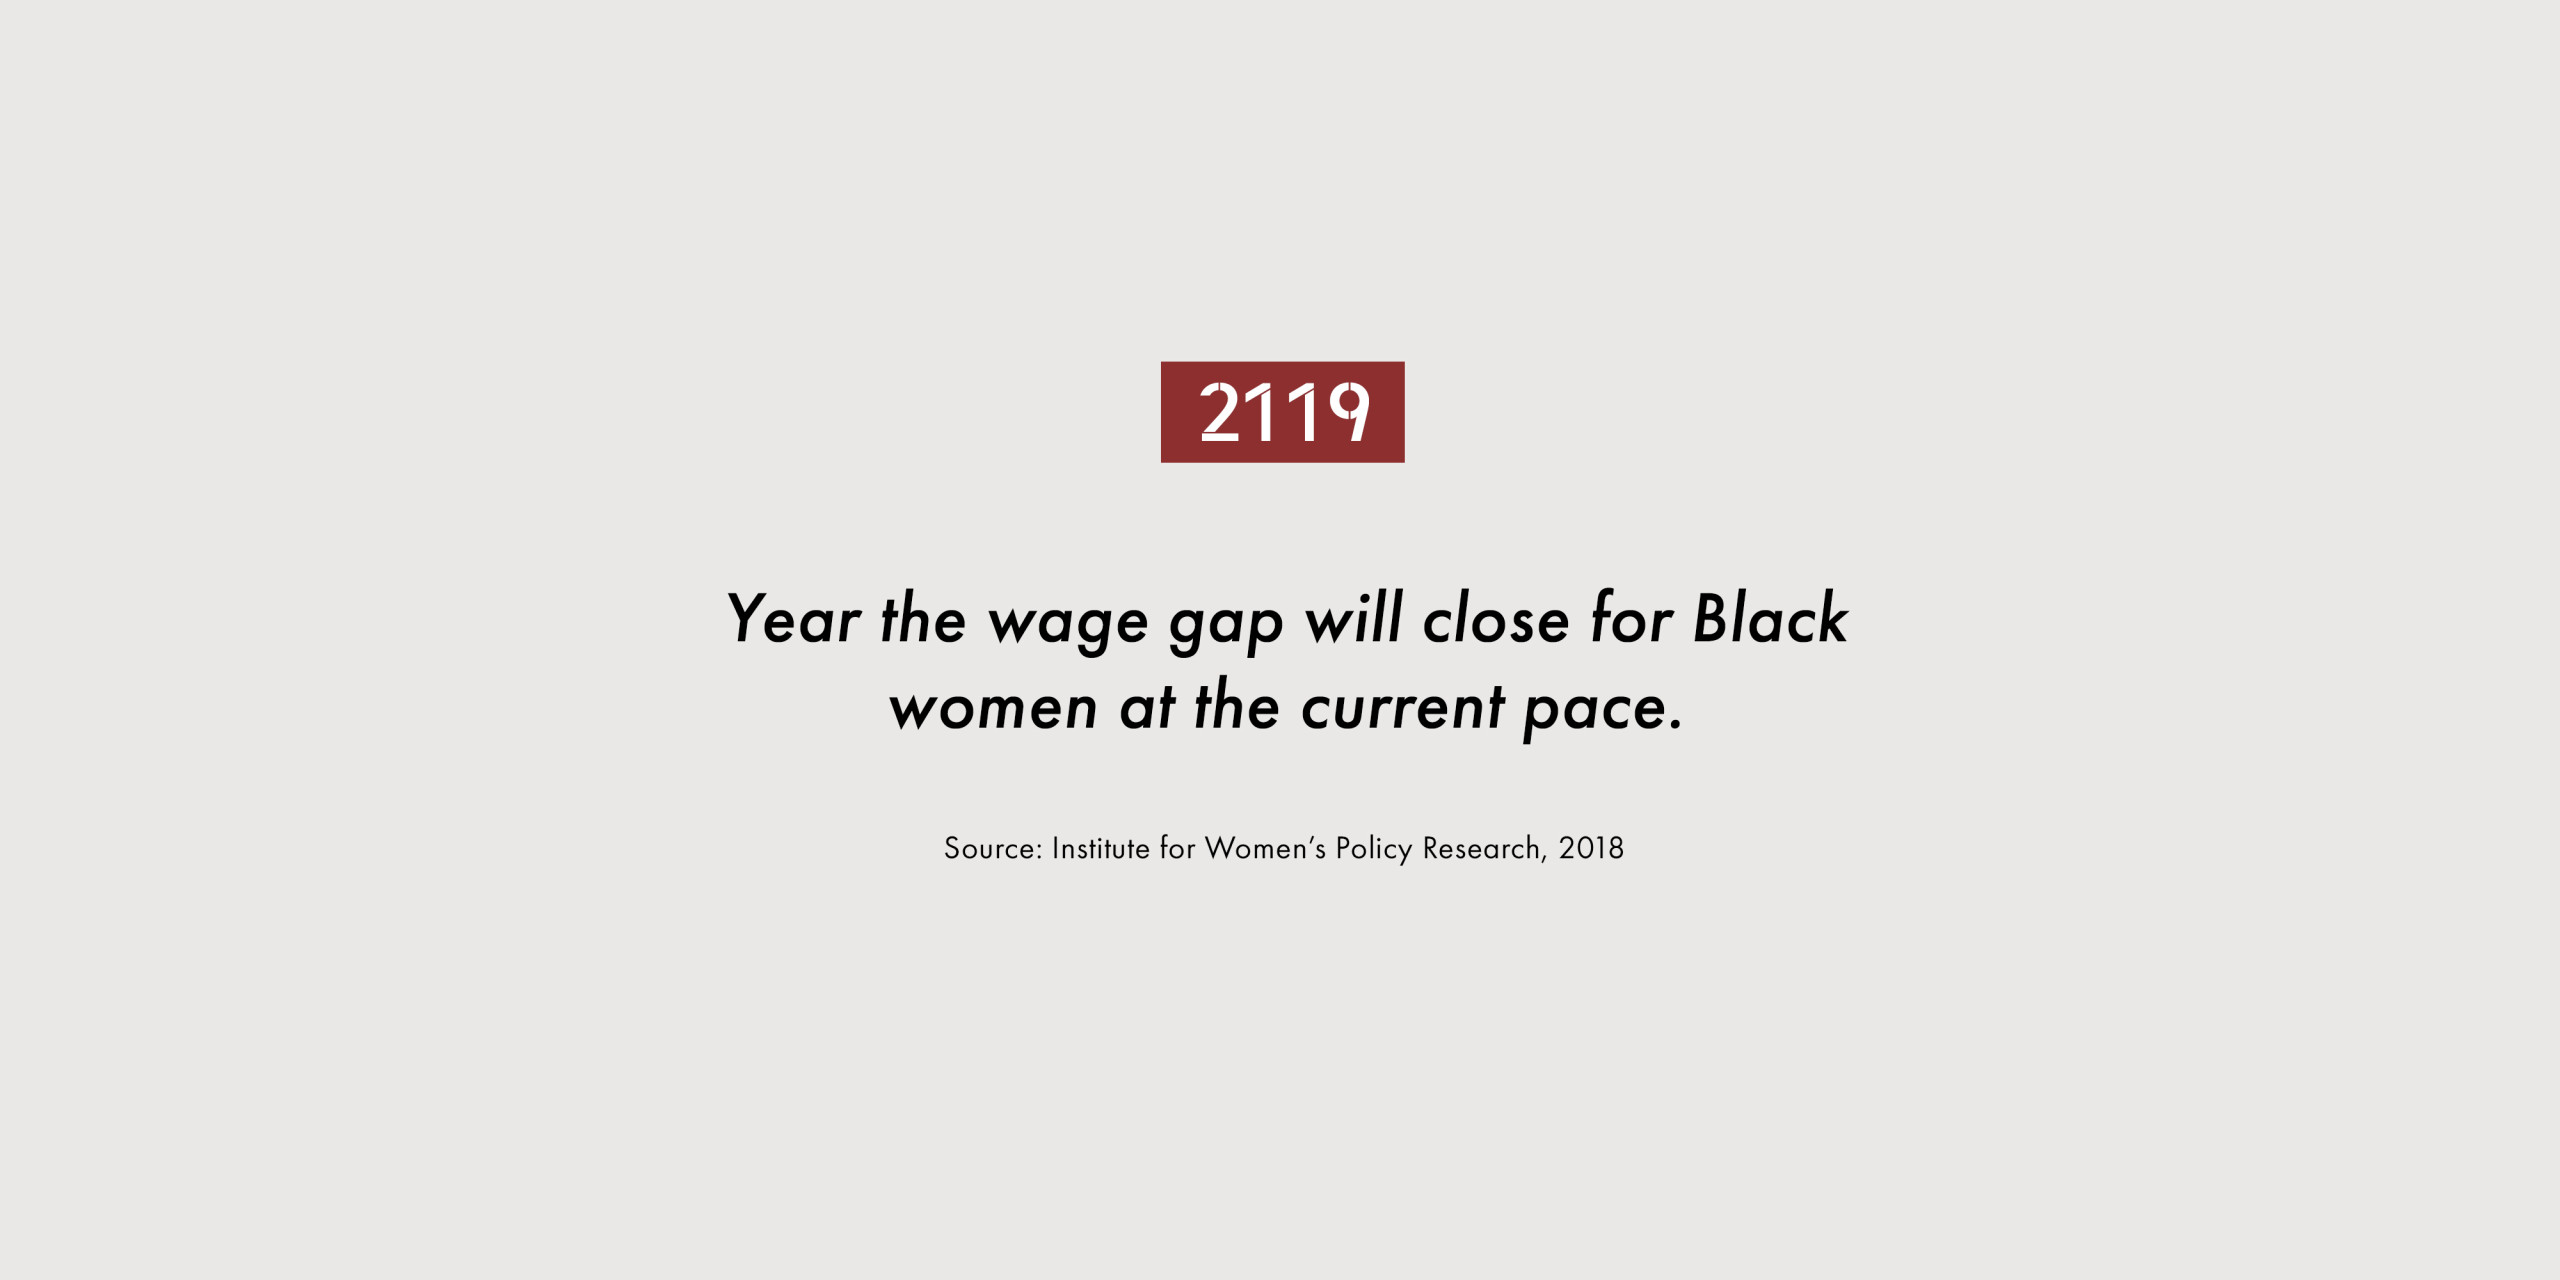 2119. Year the wage gap will close for Black women at the current pace.